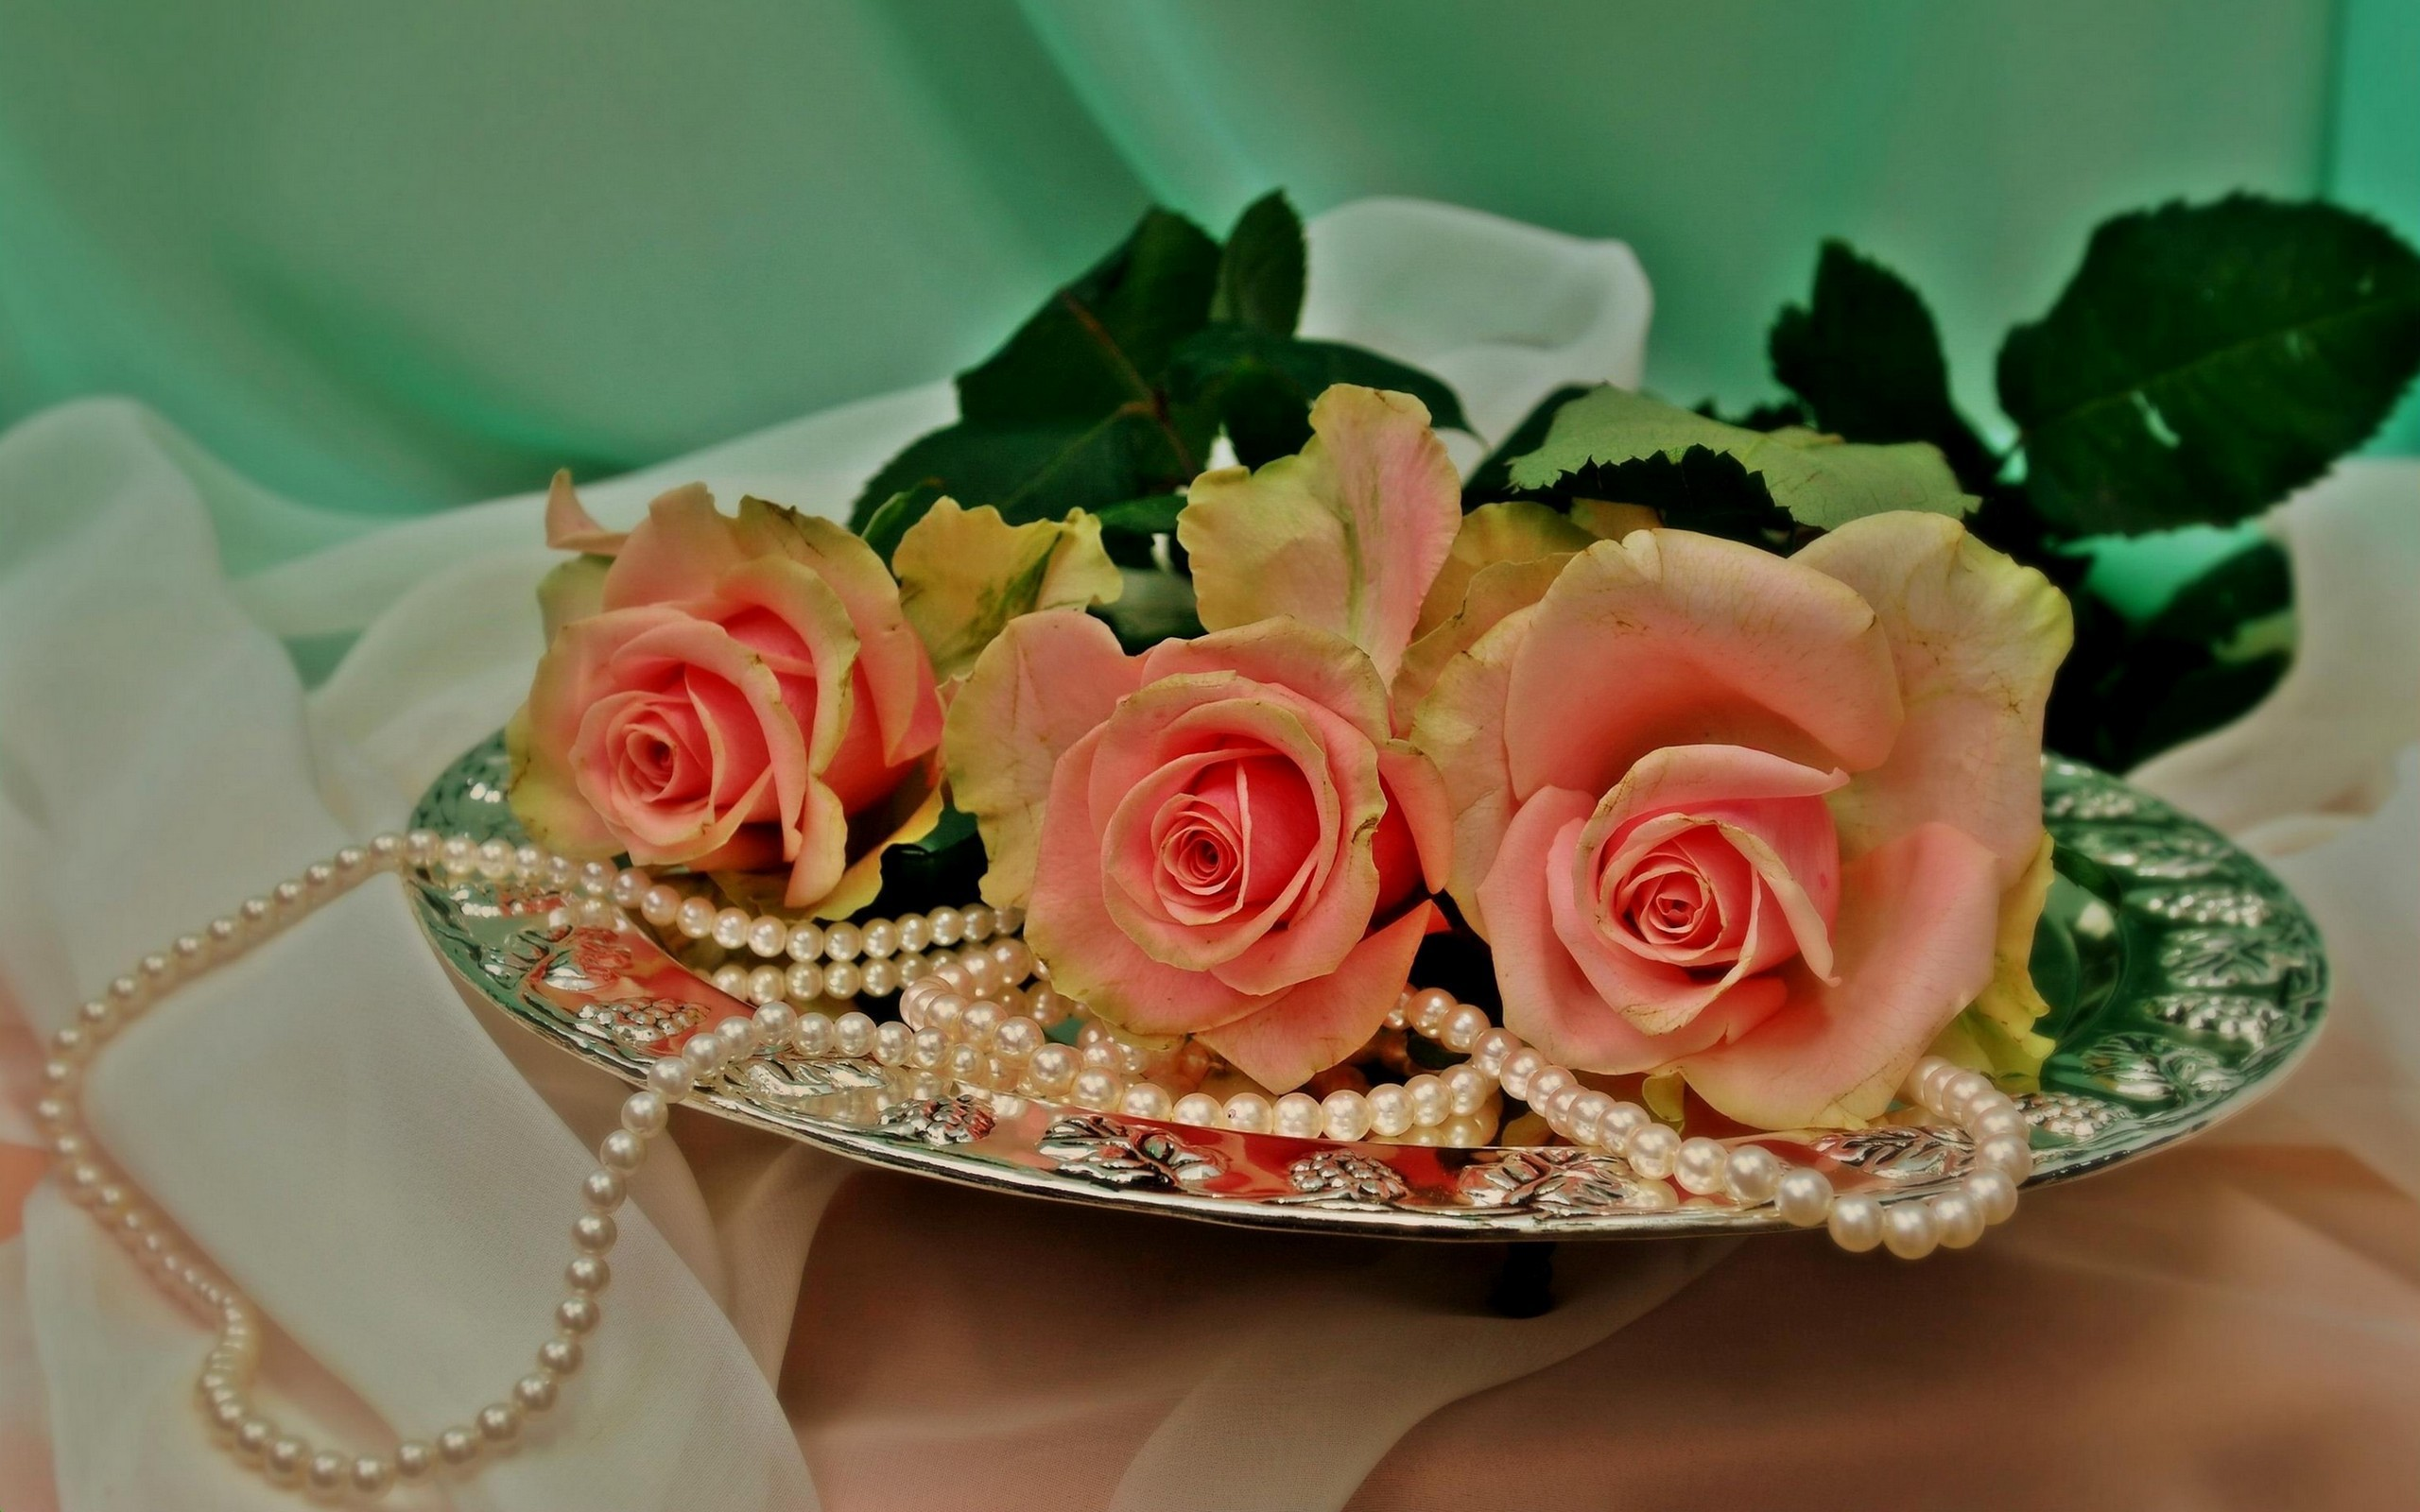 roses and pearls - photo #35